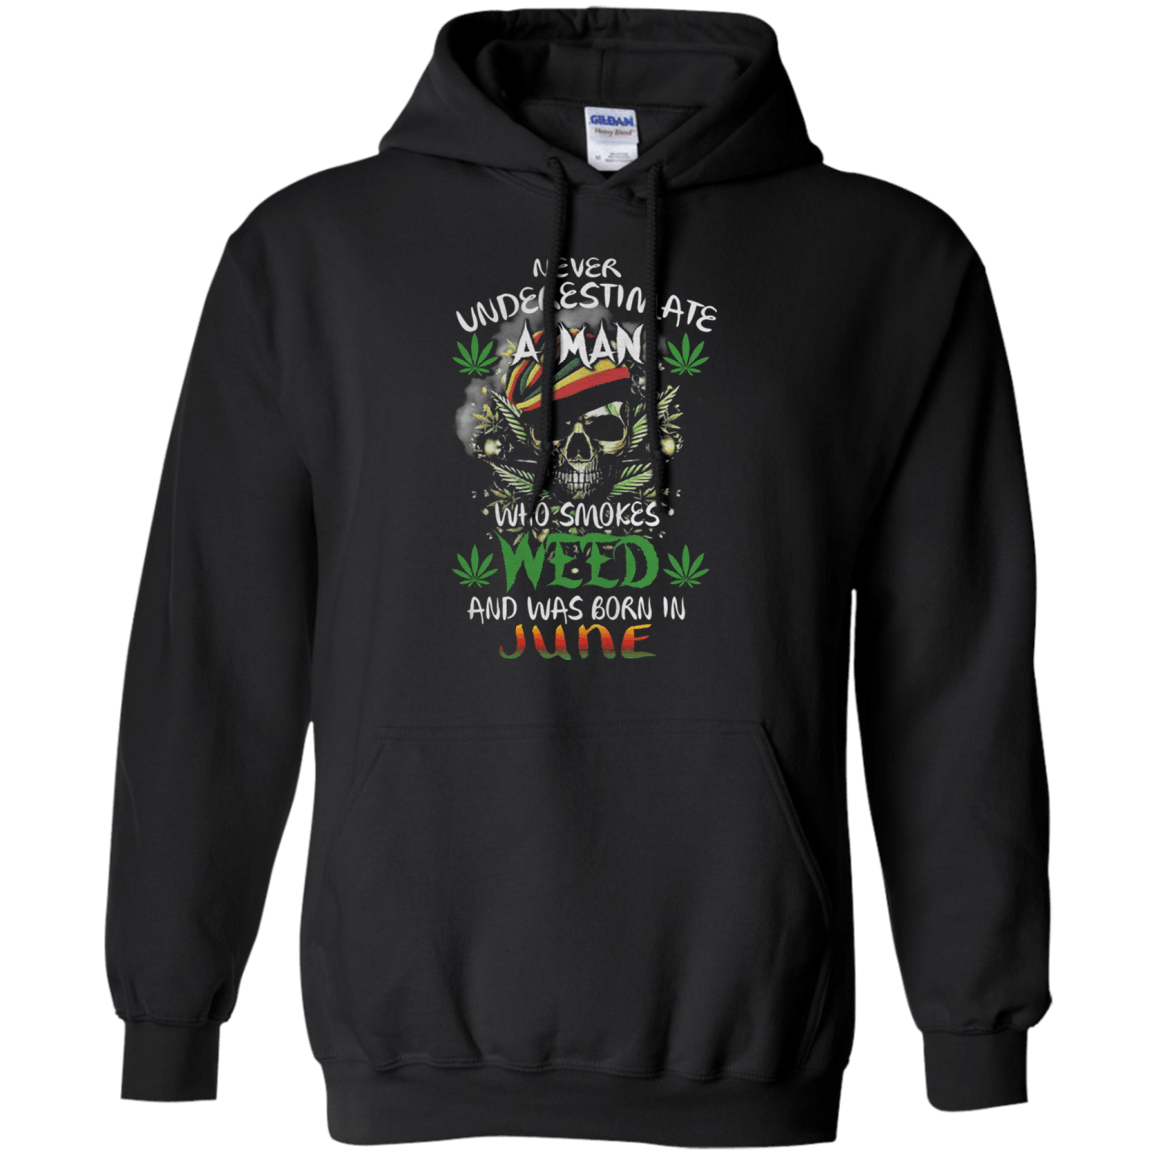 Never underestimate a man who smokes Weed and was born in June Hoodie